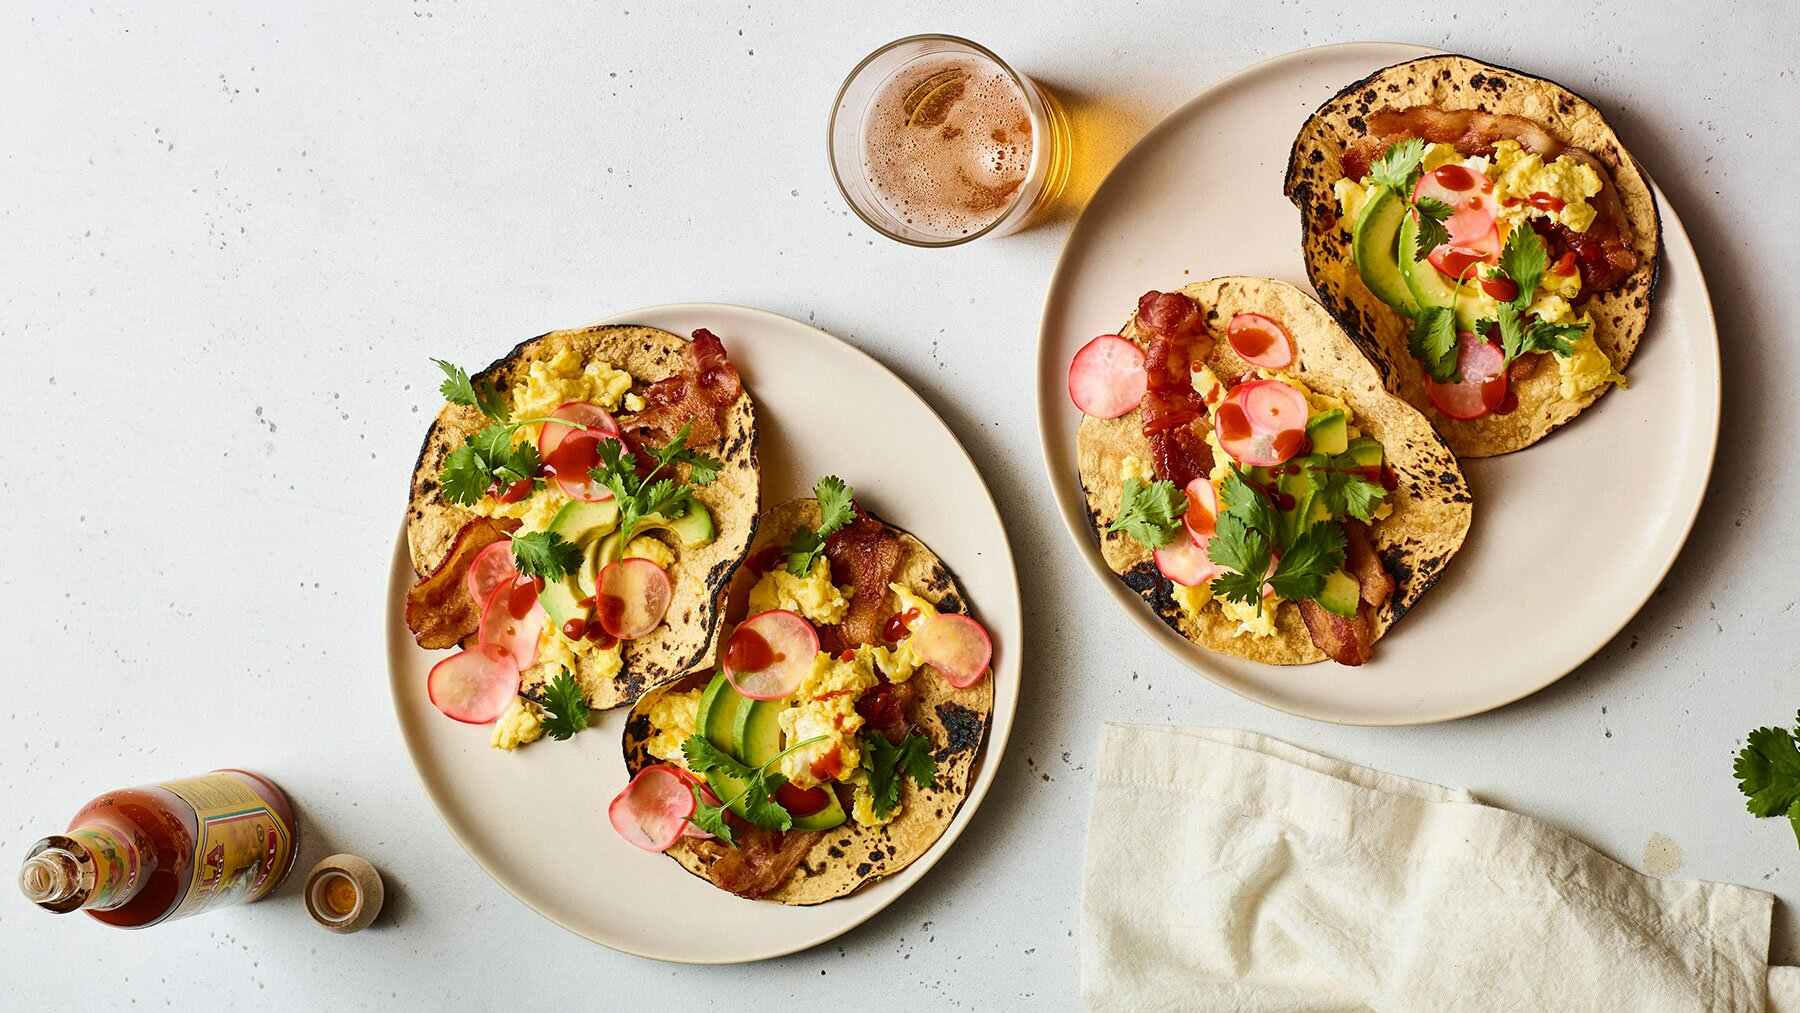 Crispy Bacon and Egg Tacos